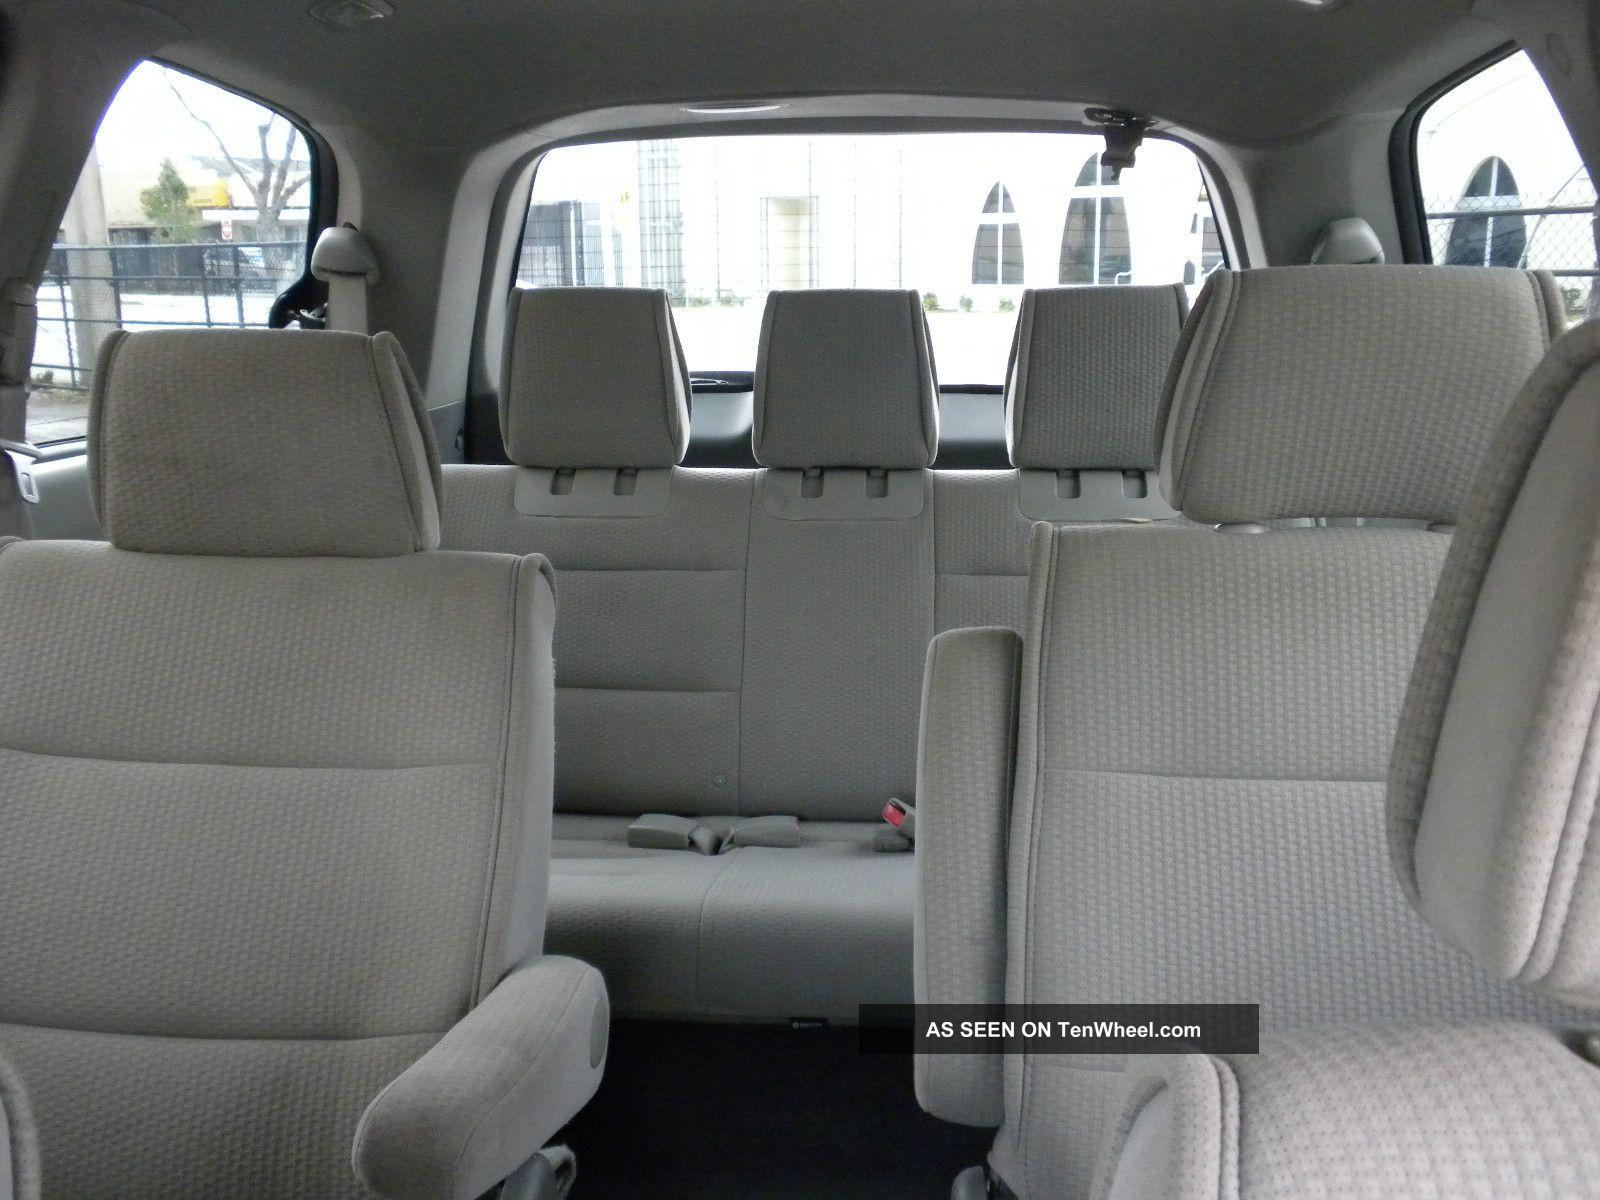 2009 nissan quest interior choice image hd cars wallpaper 2008 nissan quest information and photos zombiedrive 800 1024 1280 1600 origin 2008 nissan quest vanachro vanachro Gallery